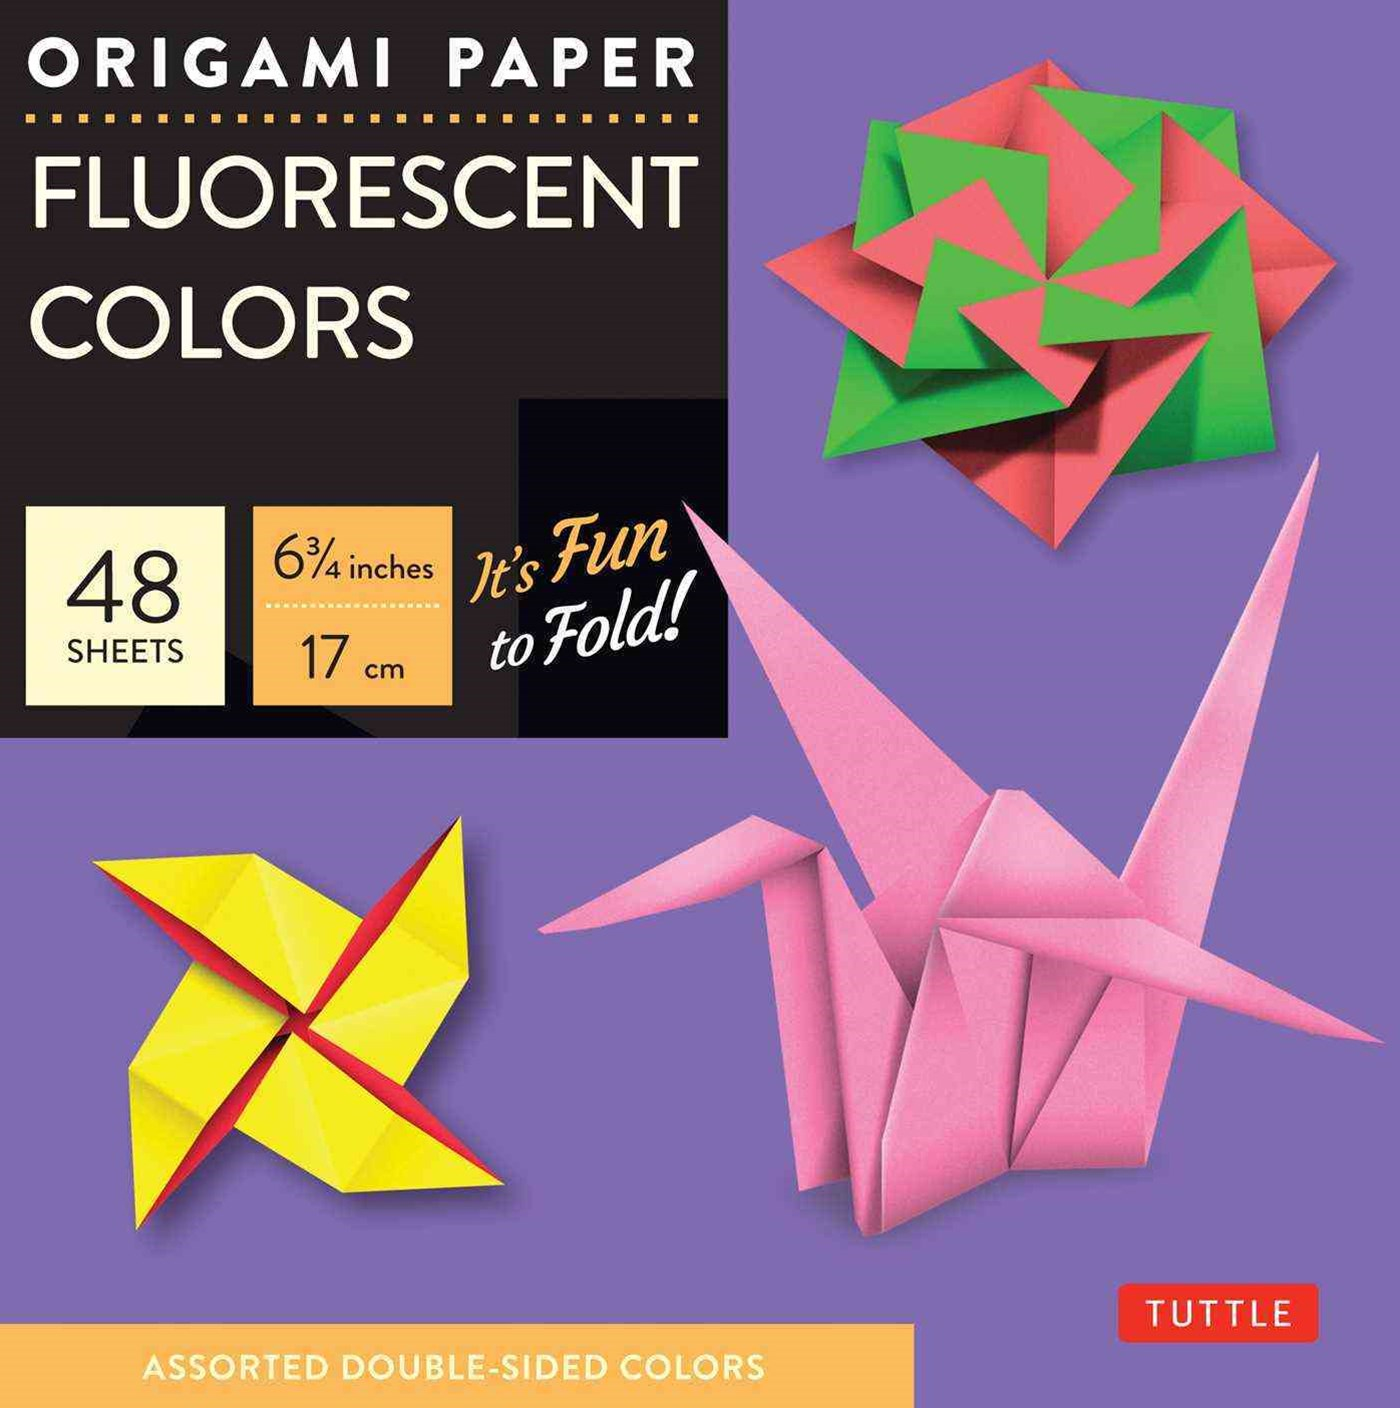 Origami Paper Fluorescent Colors